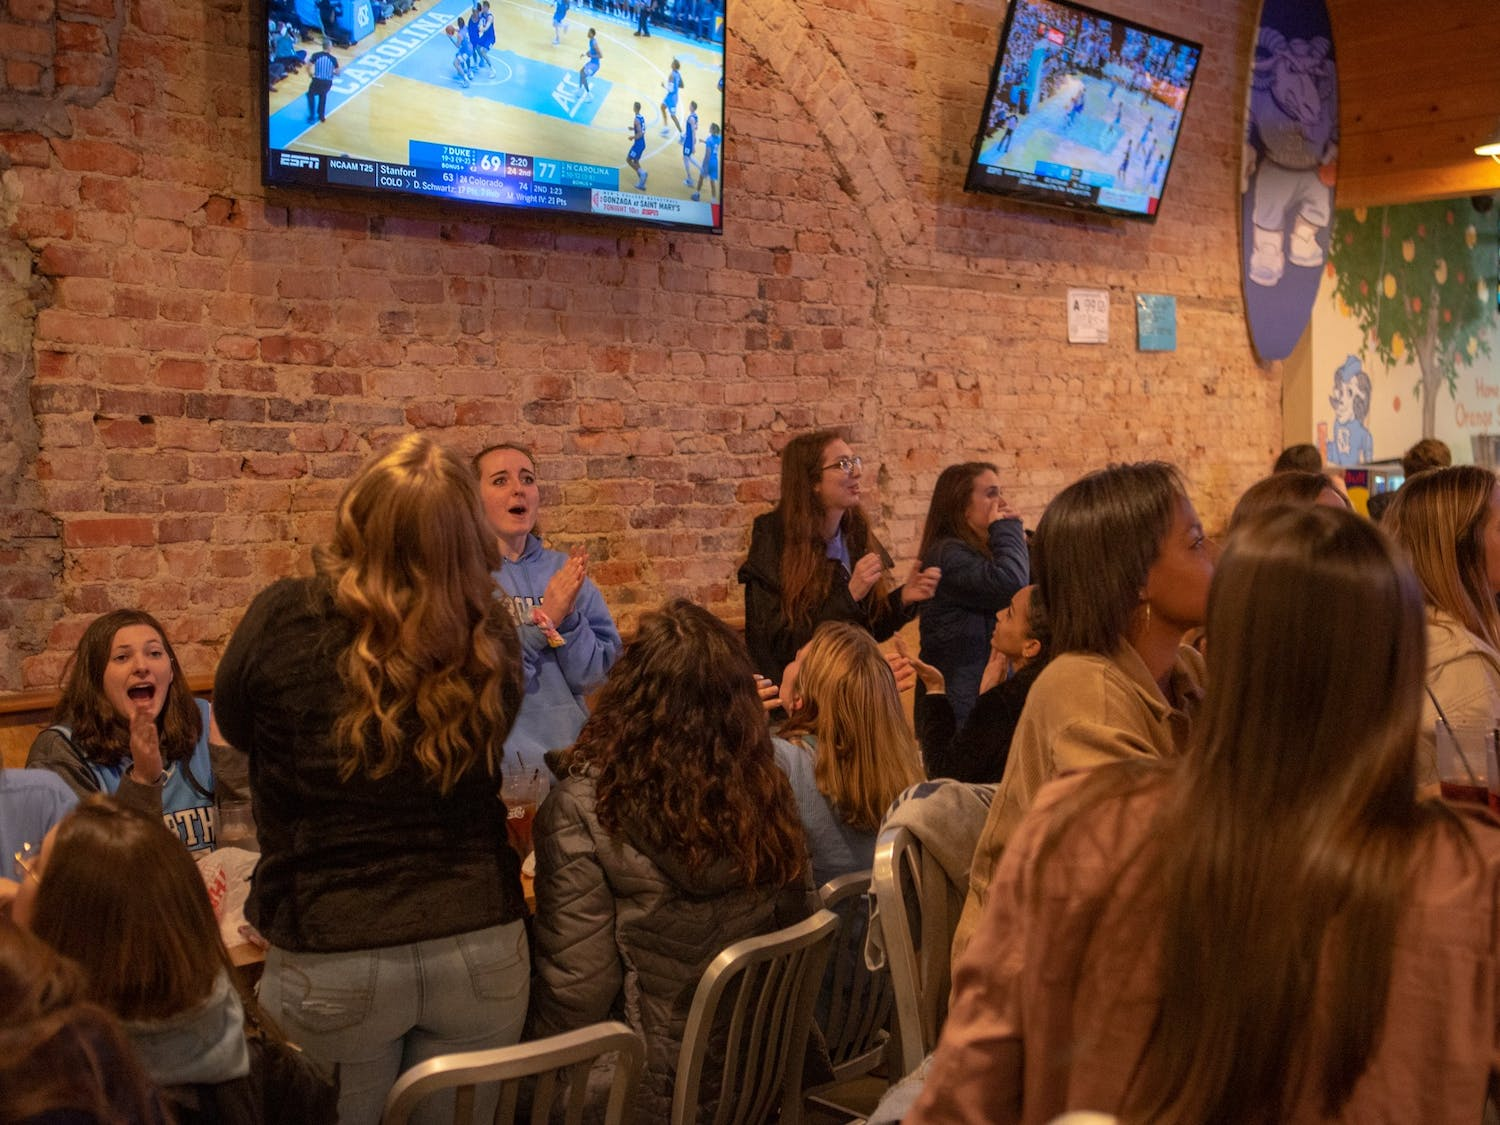 Spectators in Sup Dogs on Franklin Street cheer during UNC's game against Duke as the Tar Heels hold an 8-point lead in the second half on Sat. 8, 2020. The Tar Heels lost to Duke 98-96 in overtime.